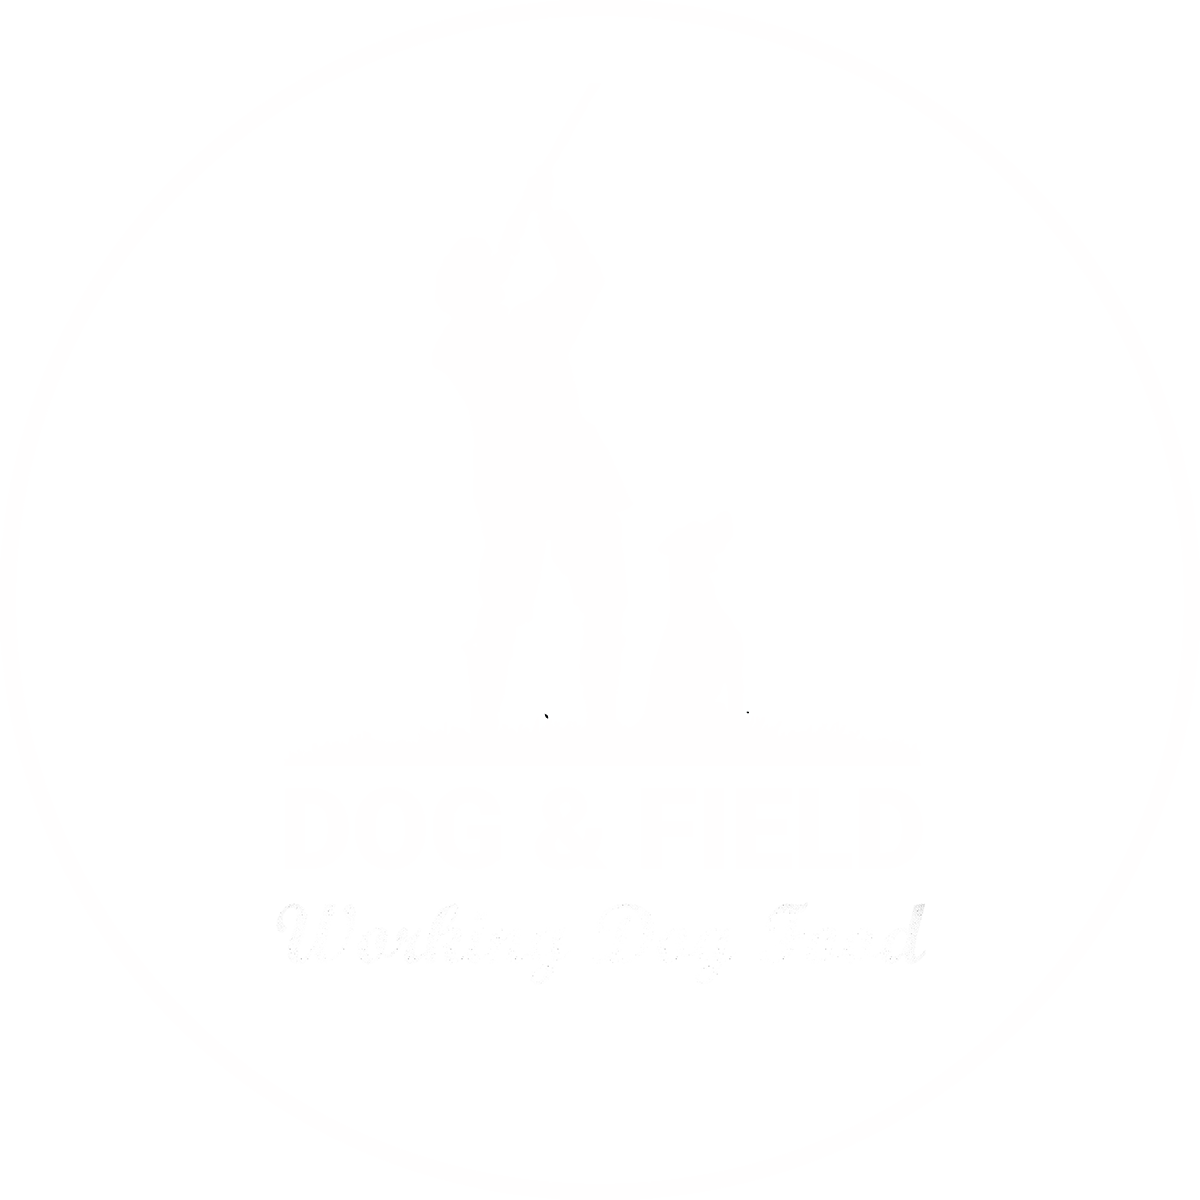 Dog & Field logo